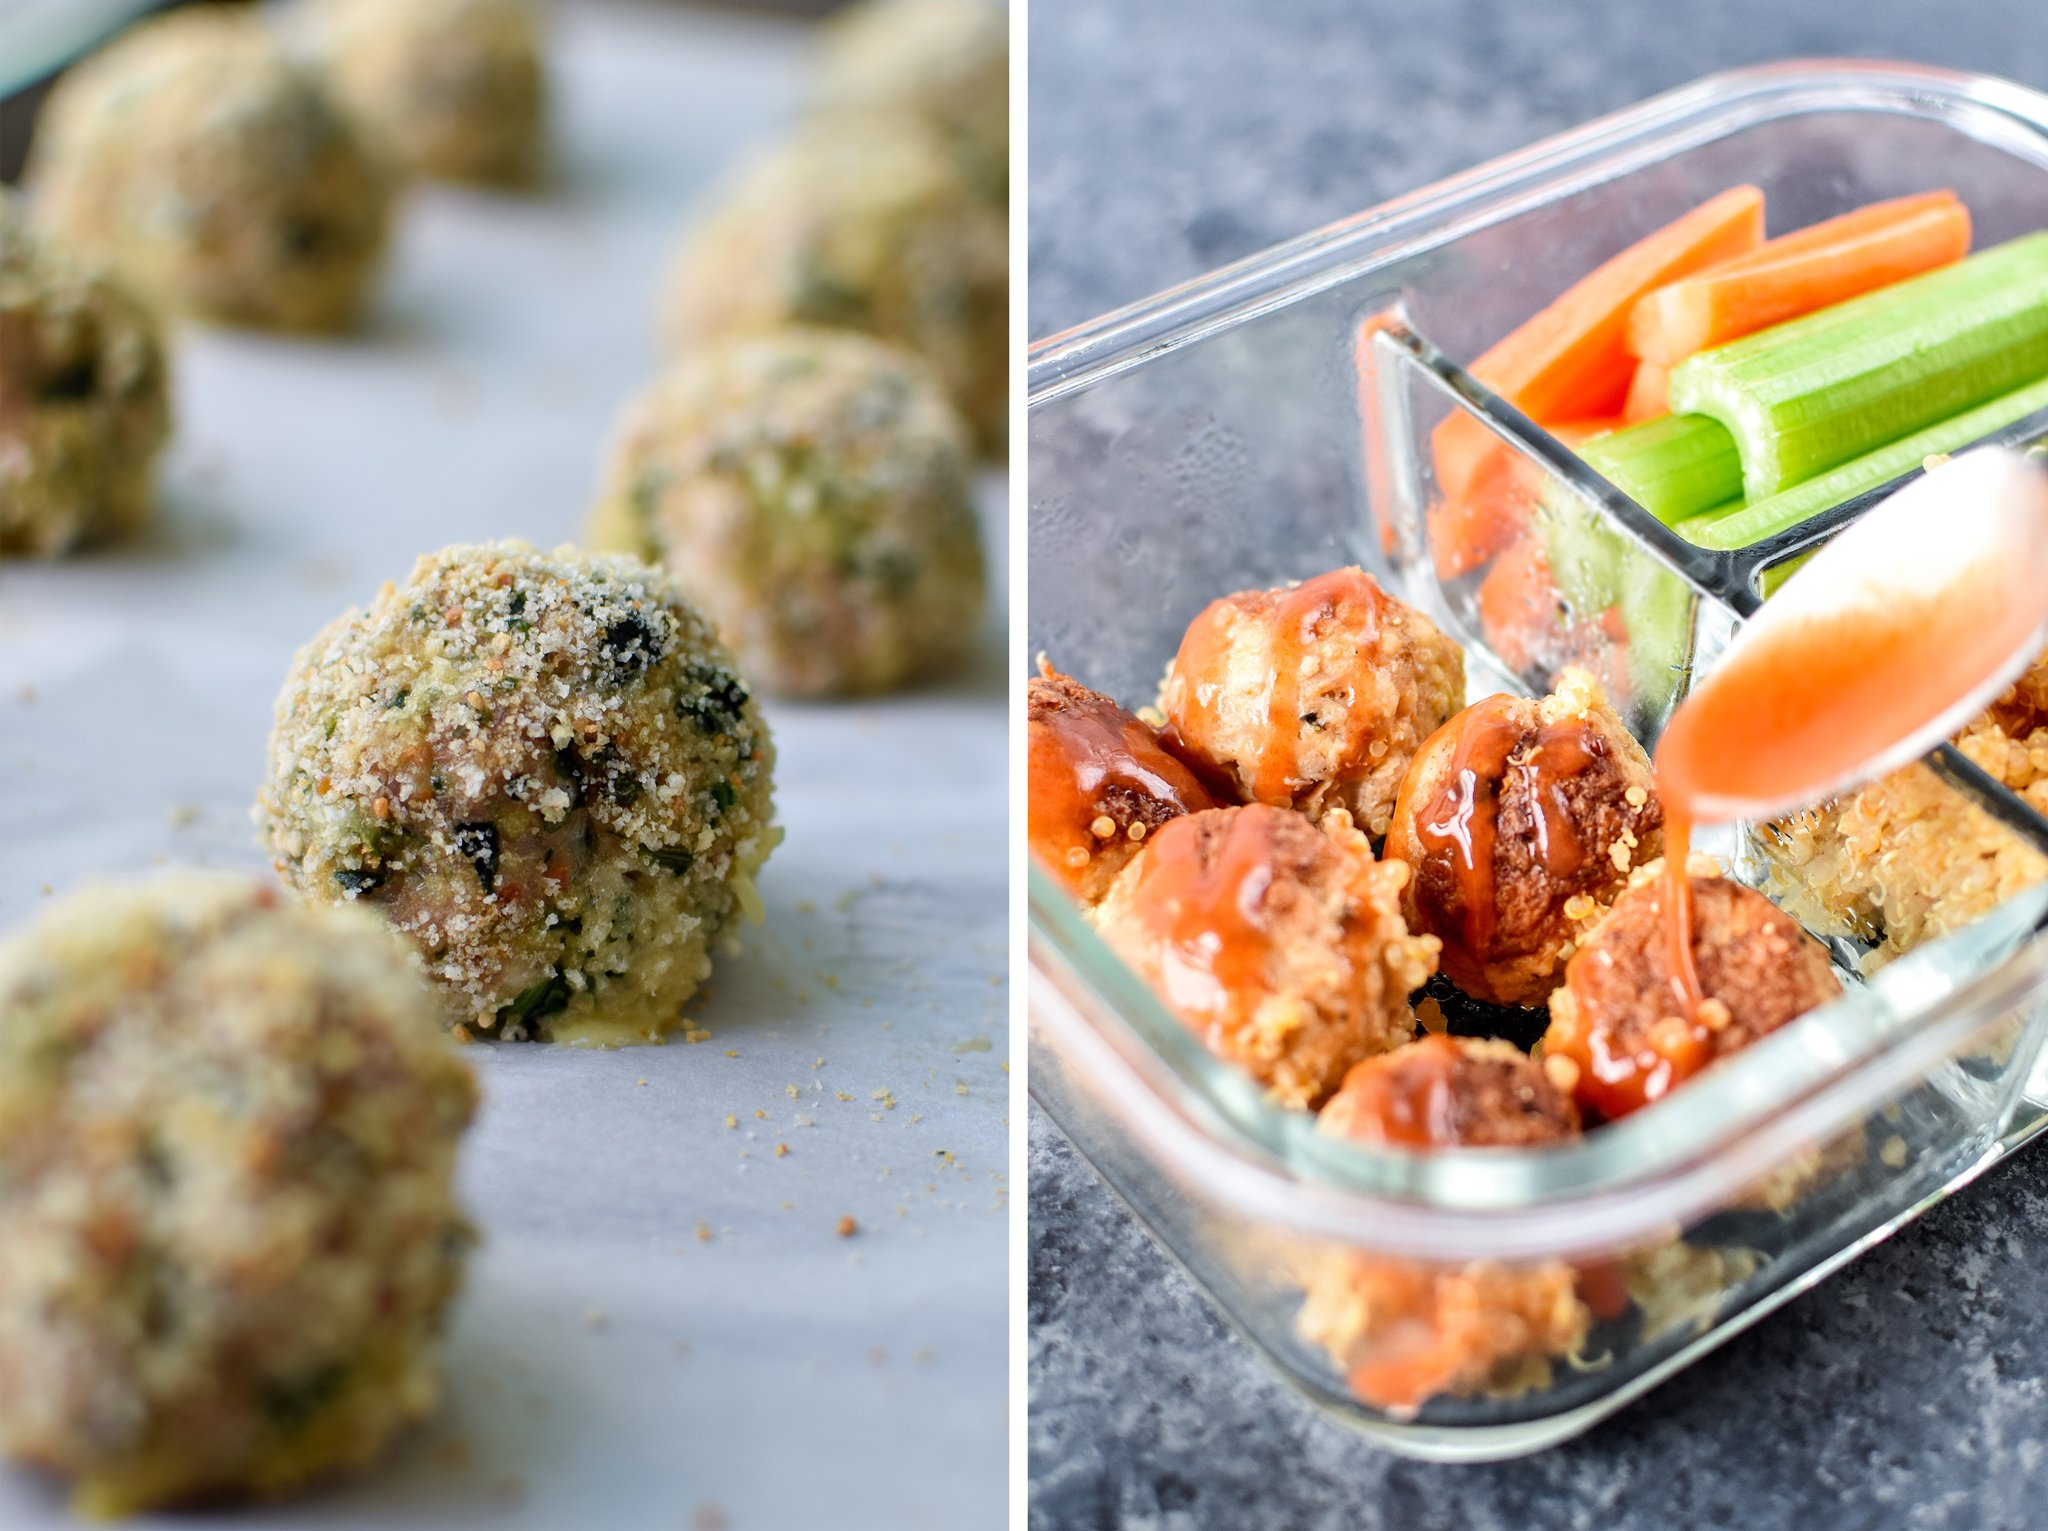 Spinach turkey meatballs on the left; buffalo chicken meatballs in a meal prep container on the right.